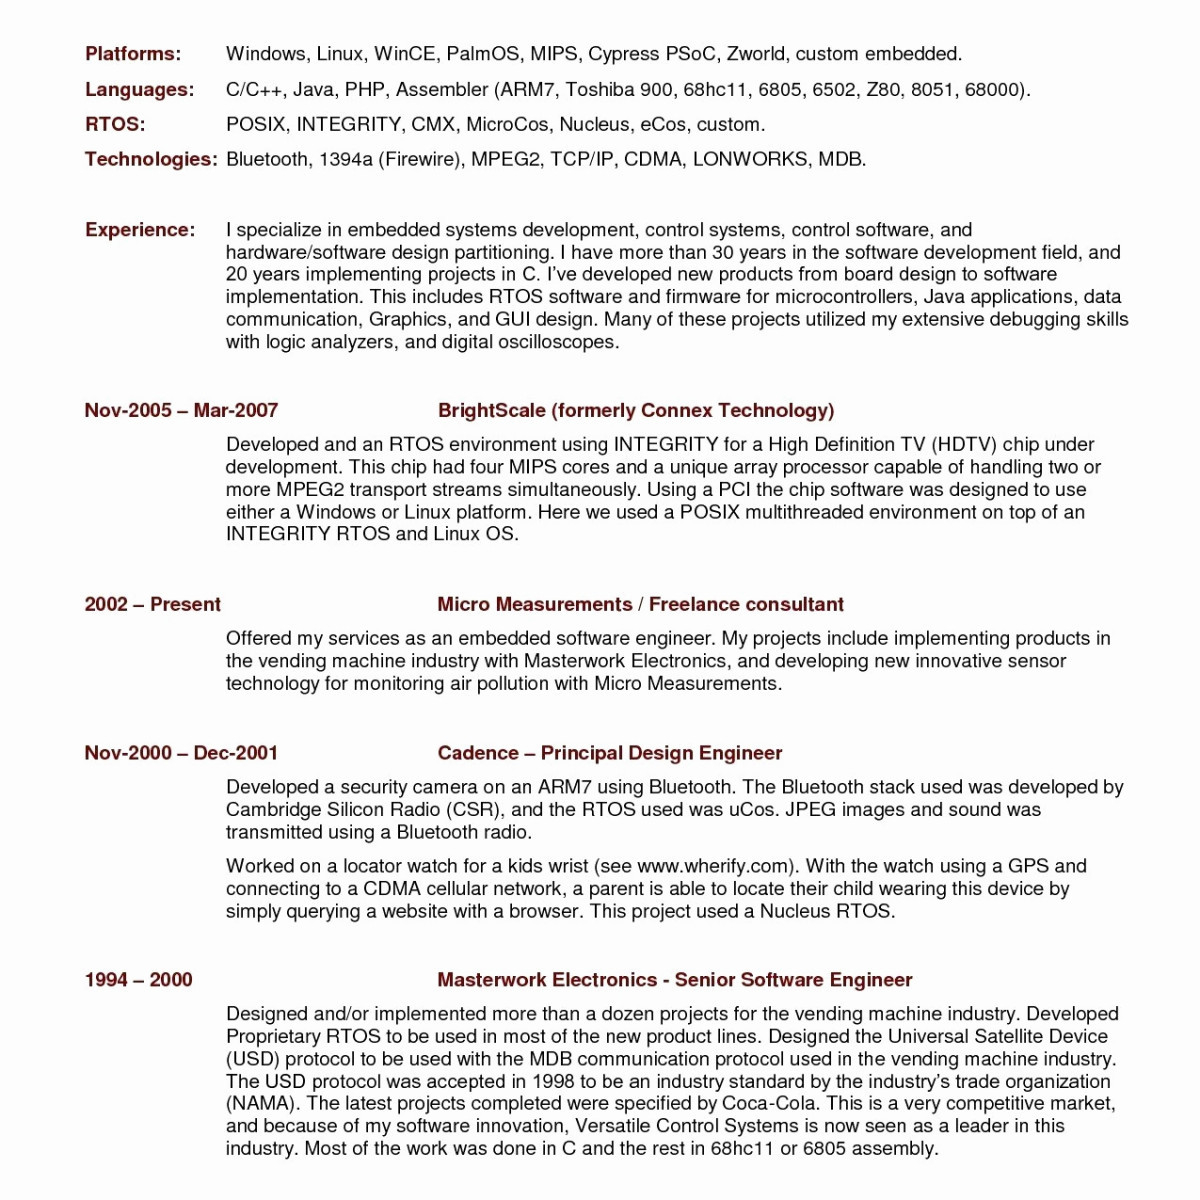 build free resume example-How to Create A Free Resume Luxury Free Resume Pdf Fresh Free Resume Builder Lovely Empty 4-i